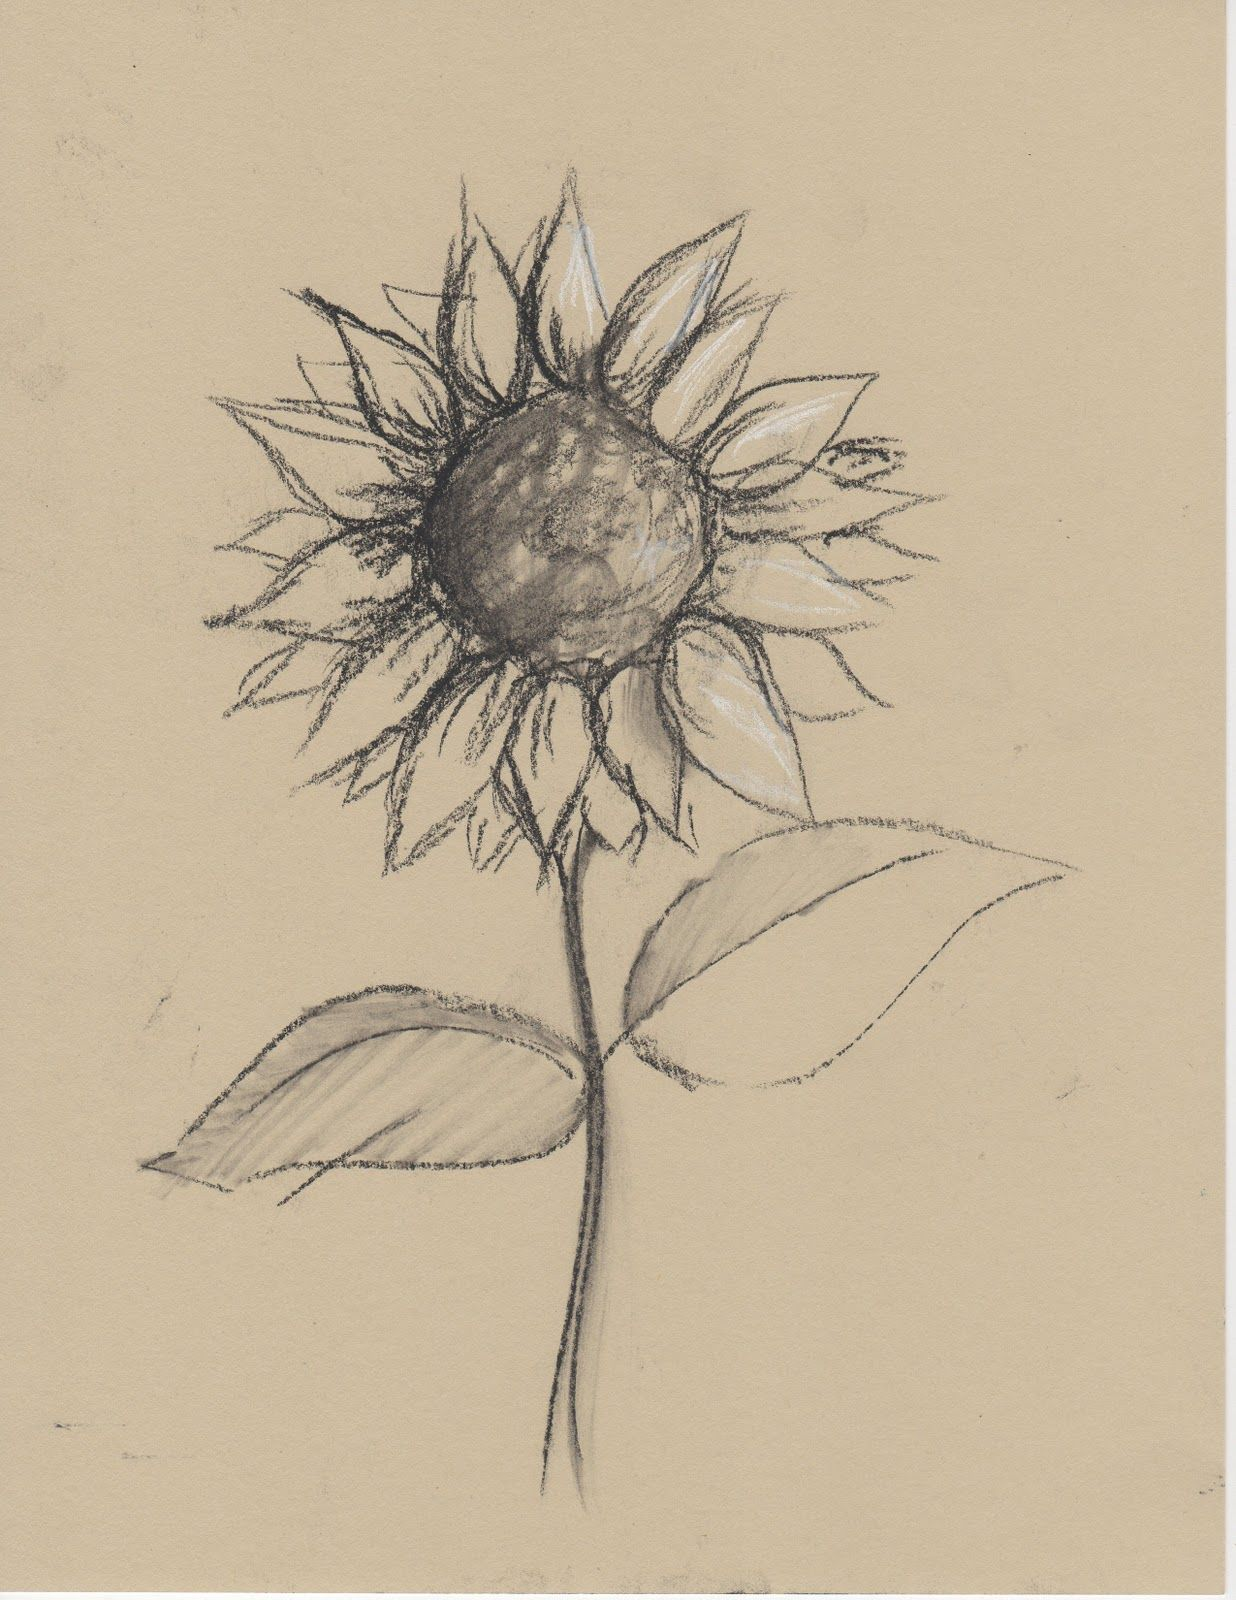 Drawings Of Sunflowers In Pencil Black+and+White+Sketch...